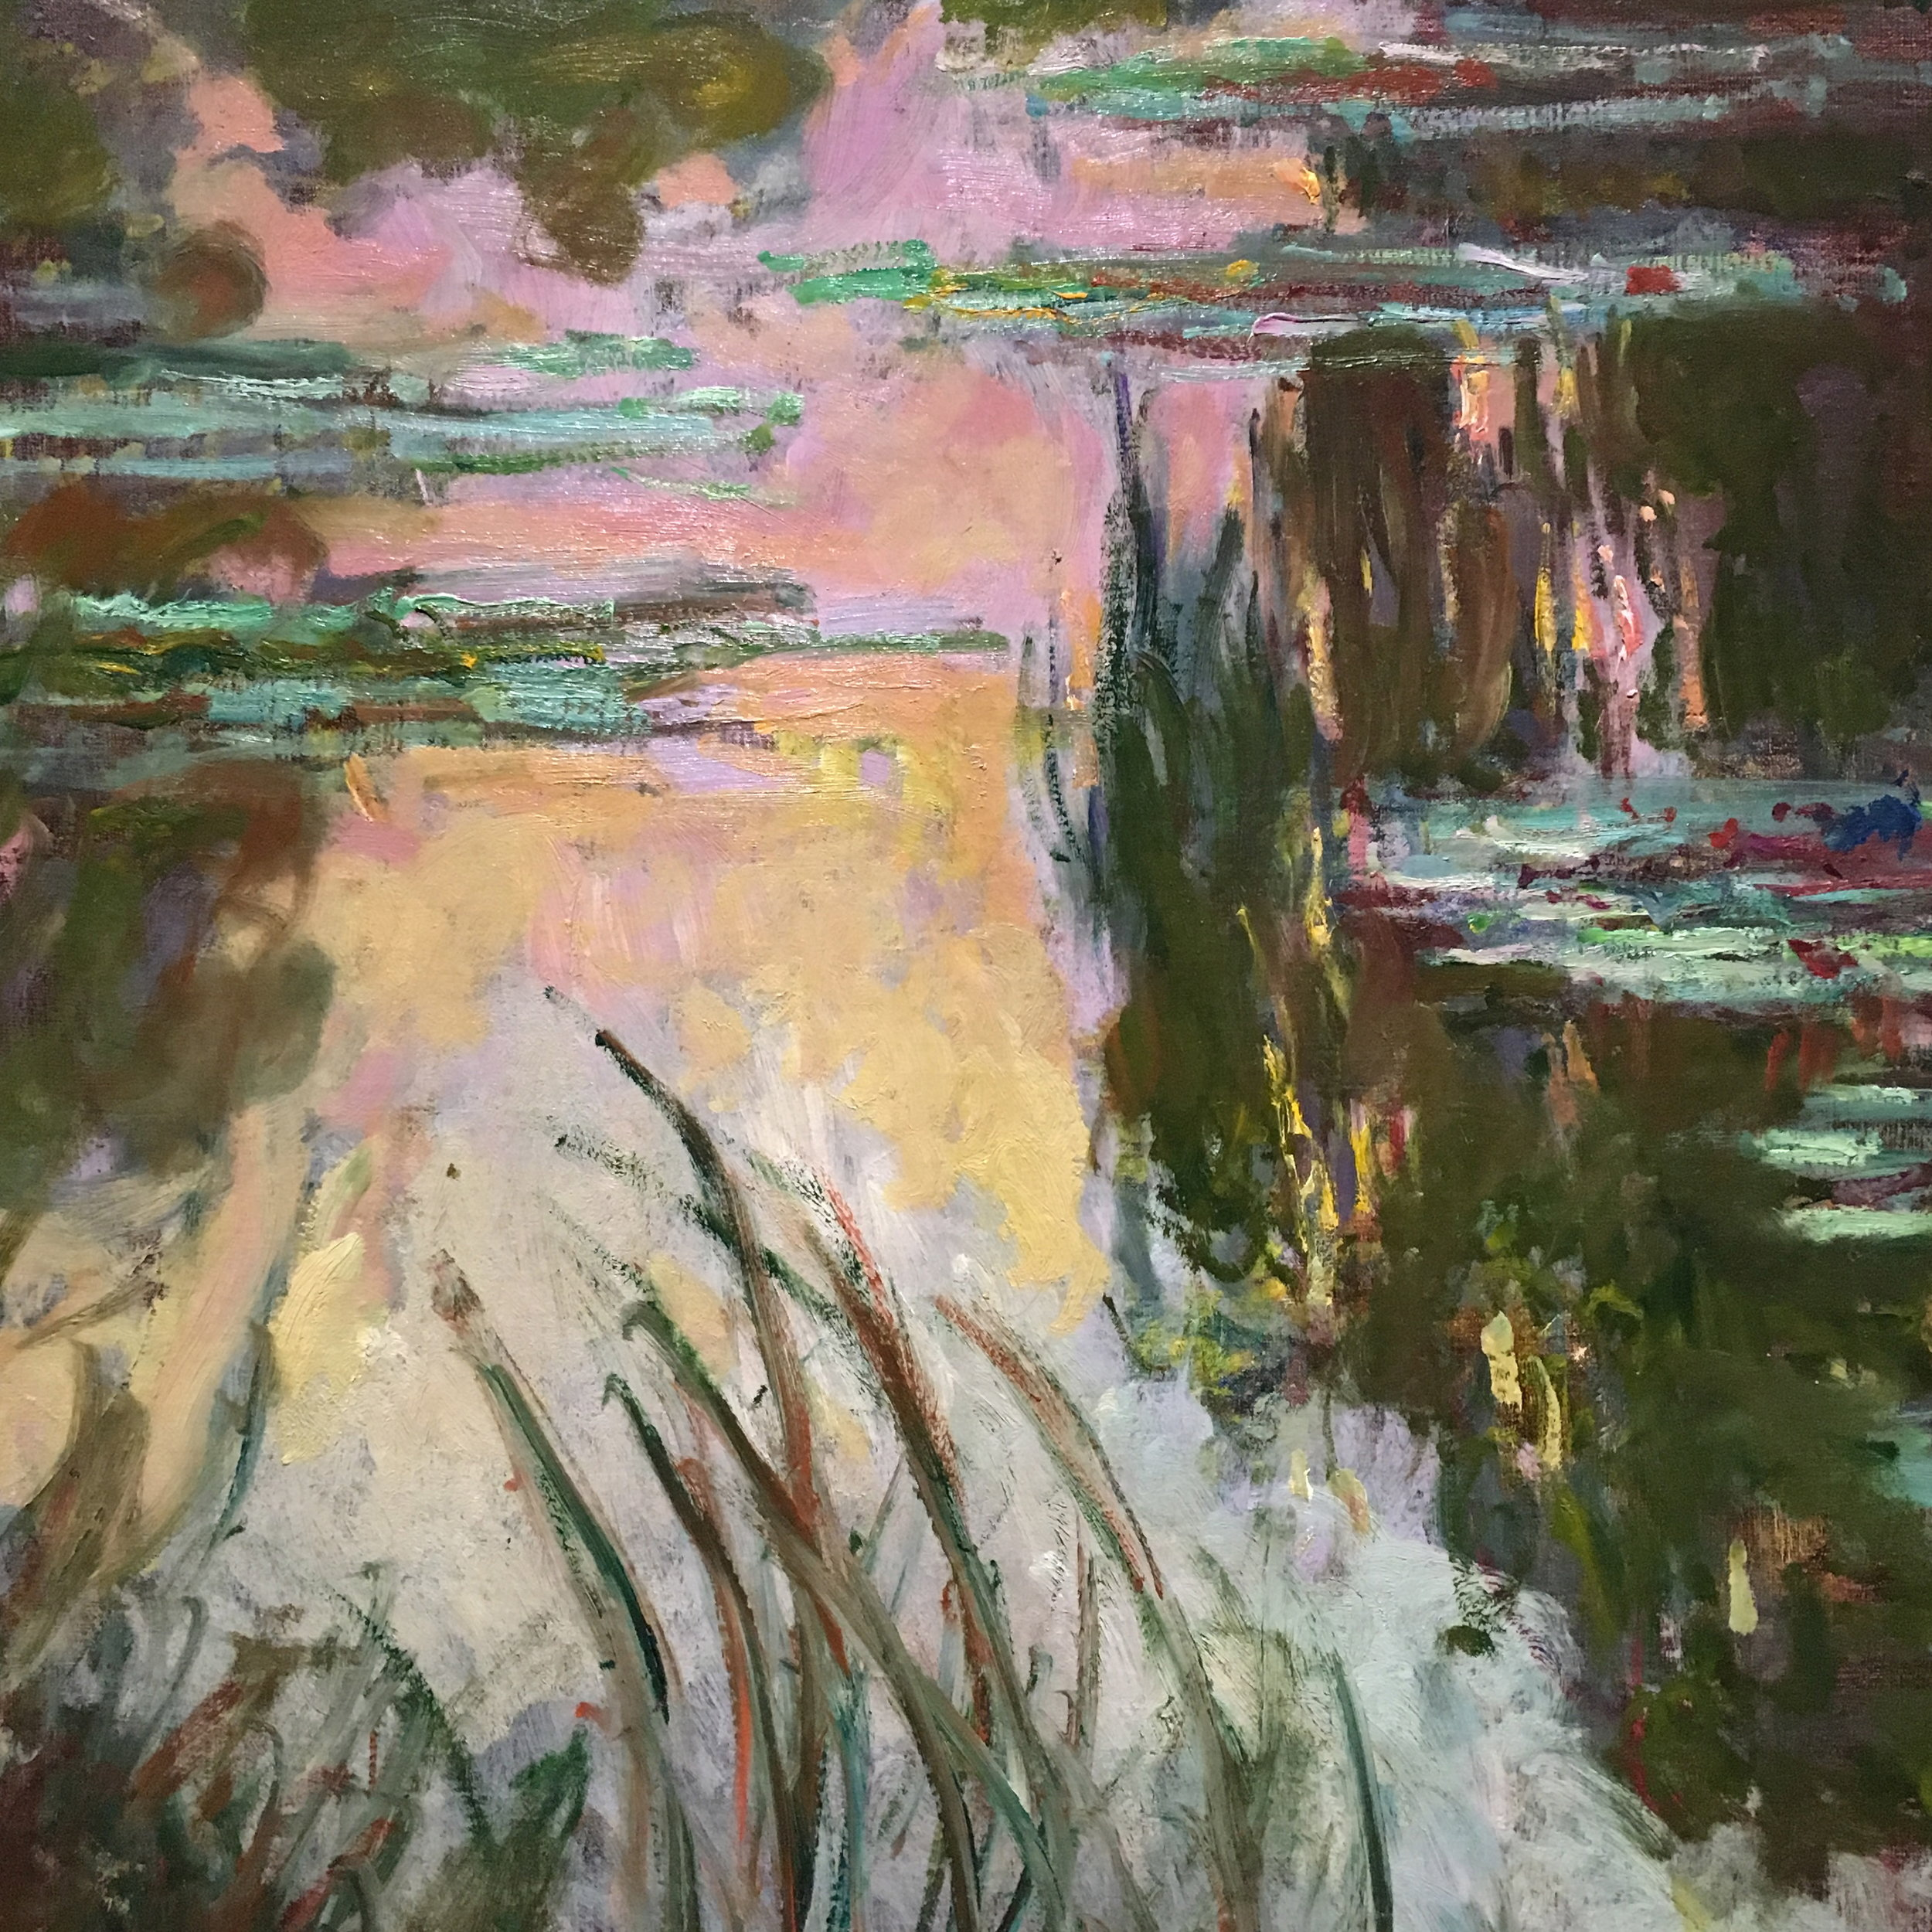 Monet, Water Lillies, Setting Sun (1907)